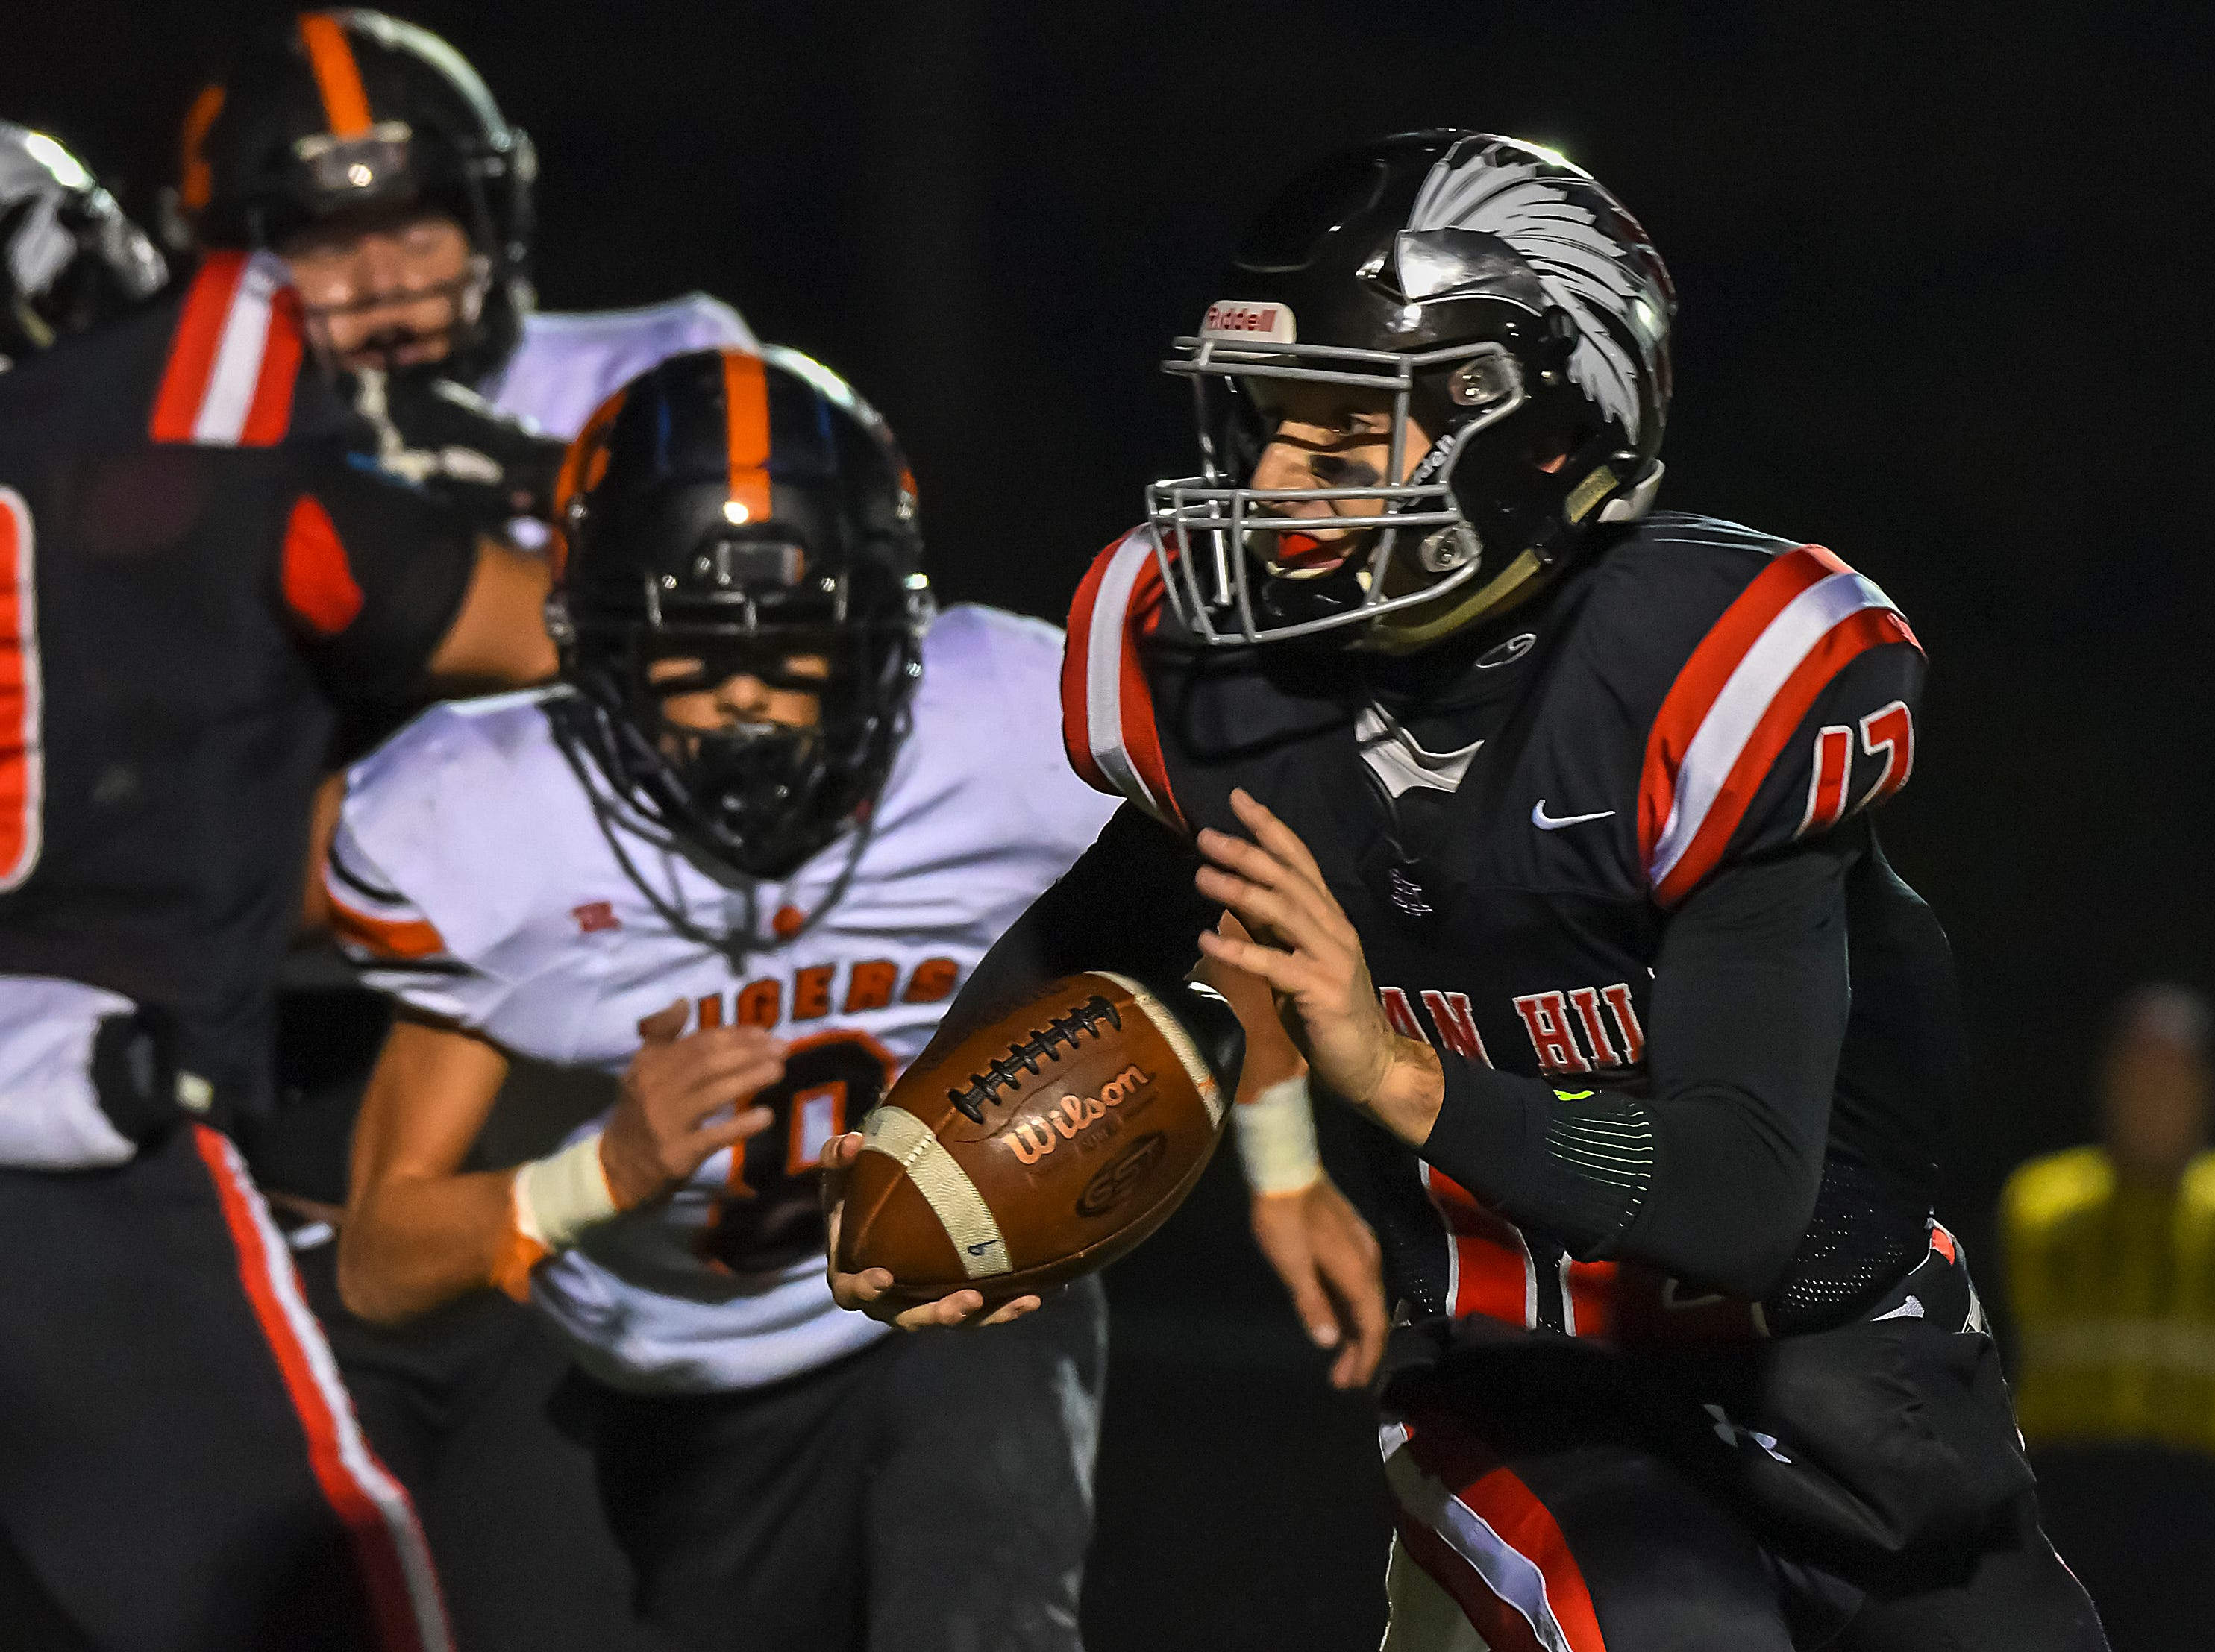 Indian Hill quarterback Cole Dein runs the ball against Waverly in the OHSAA D4 Region 16 Playoffs at Indian Hill High School, Saturday, Nov. 3, 2018